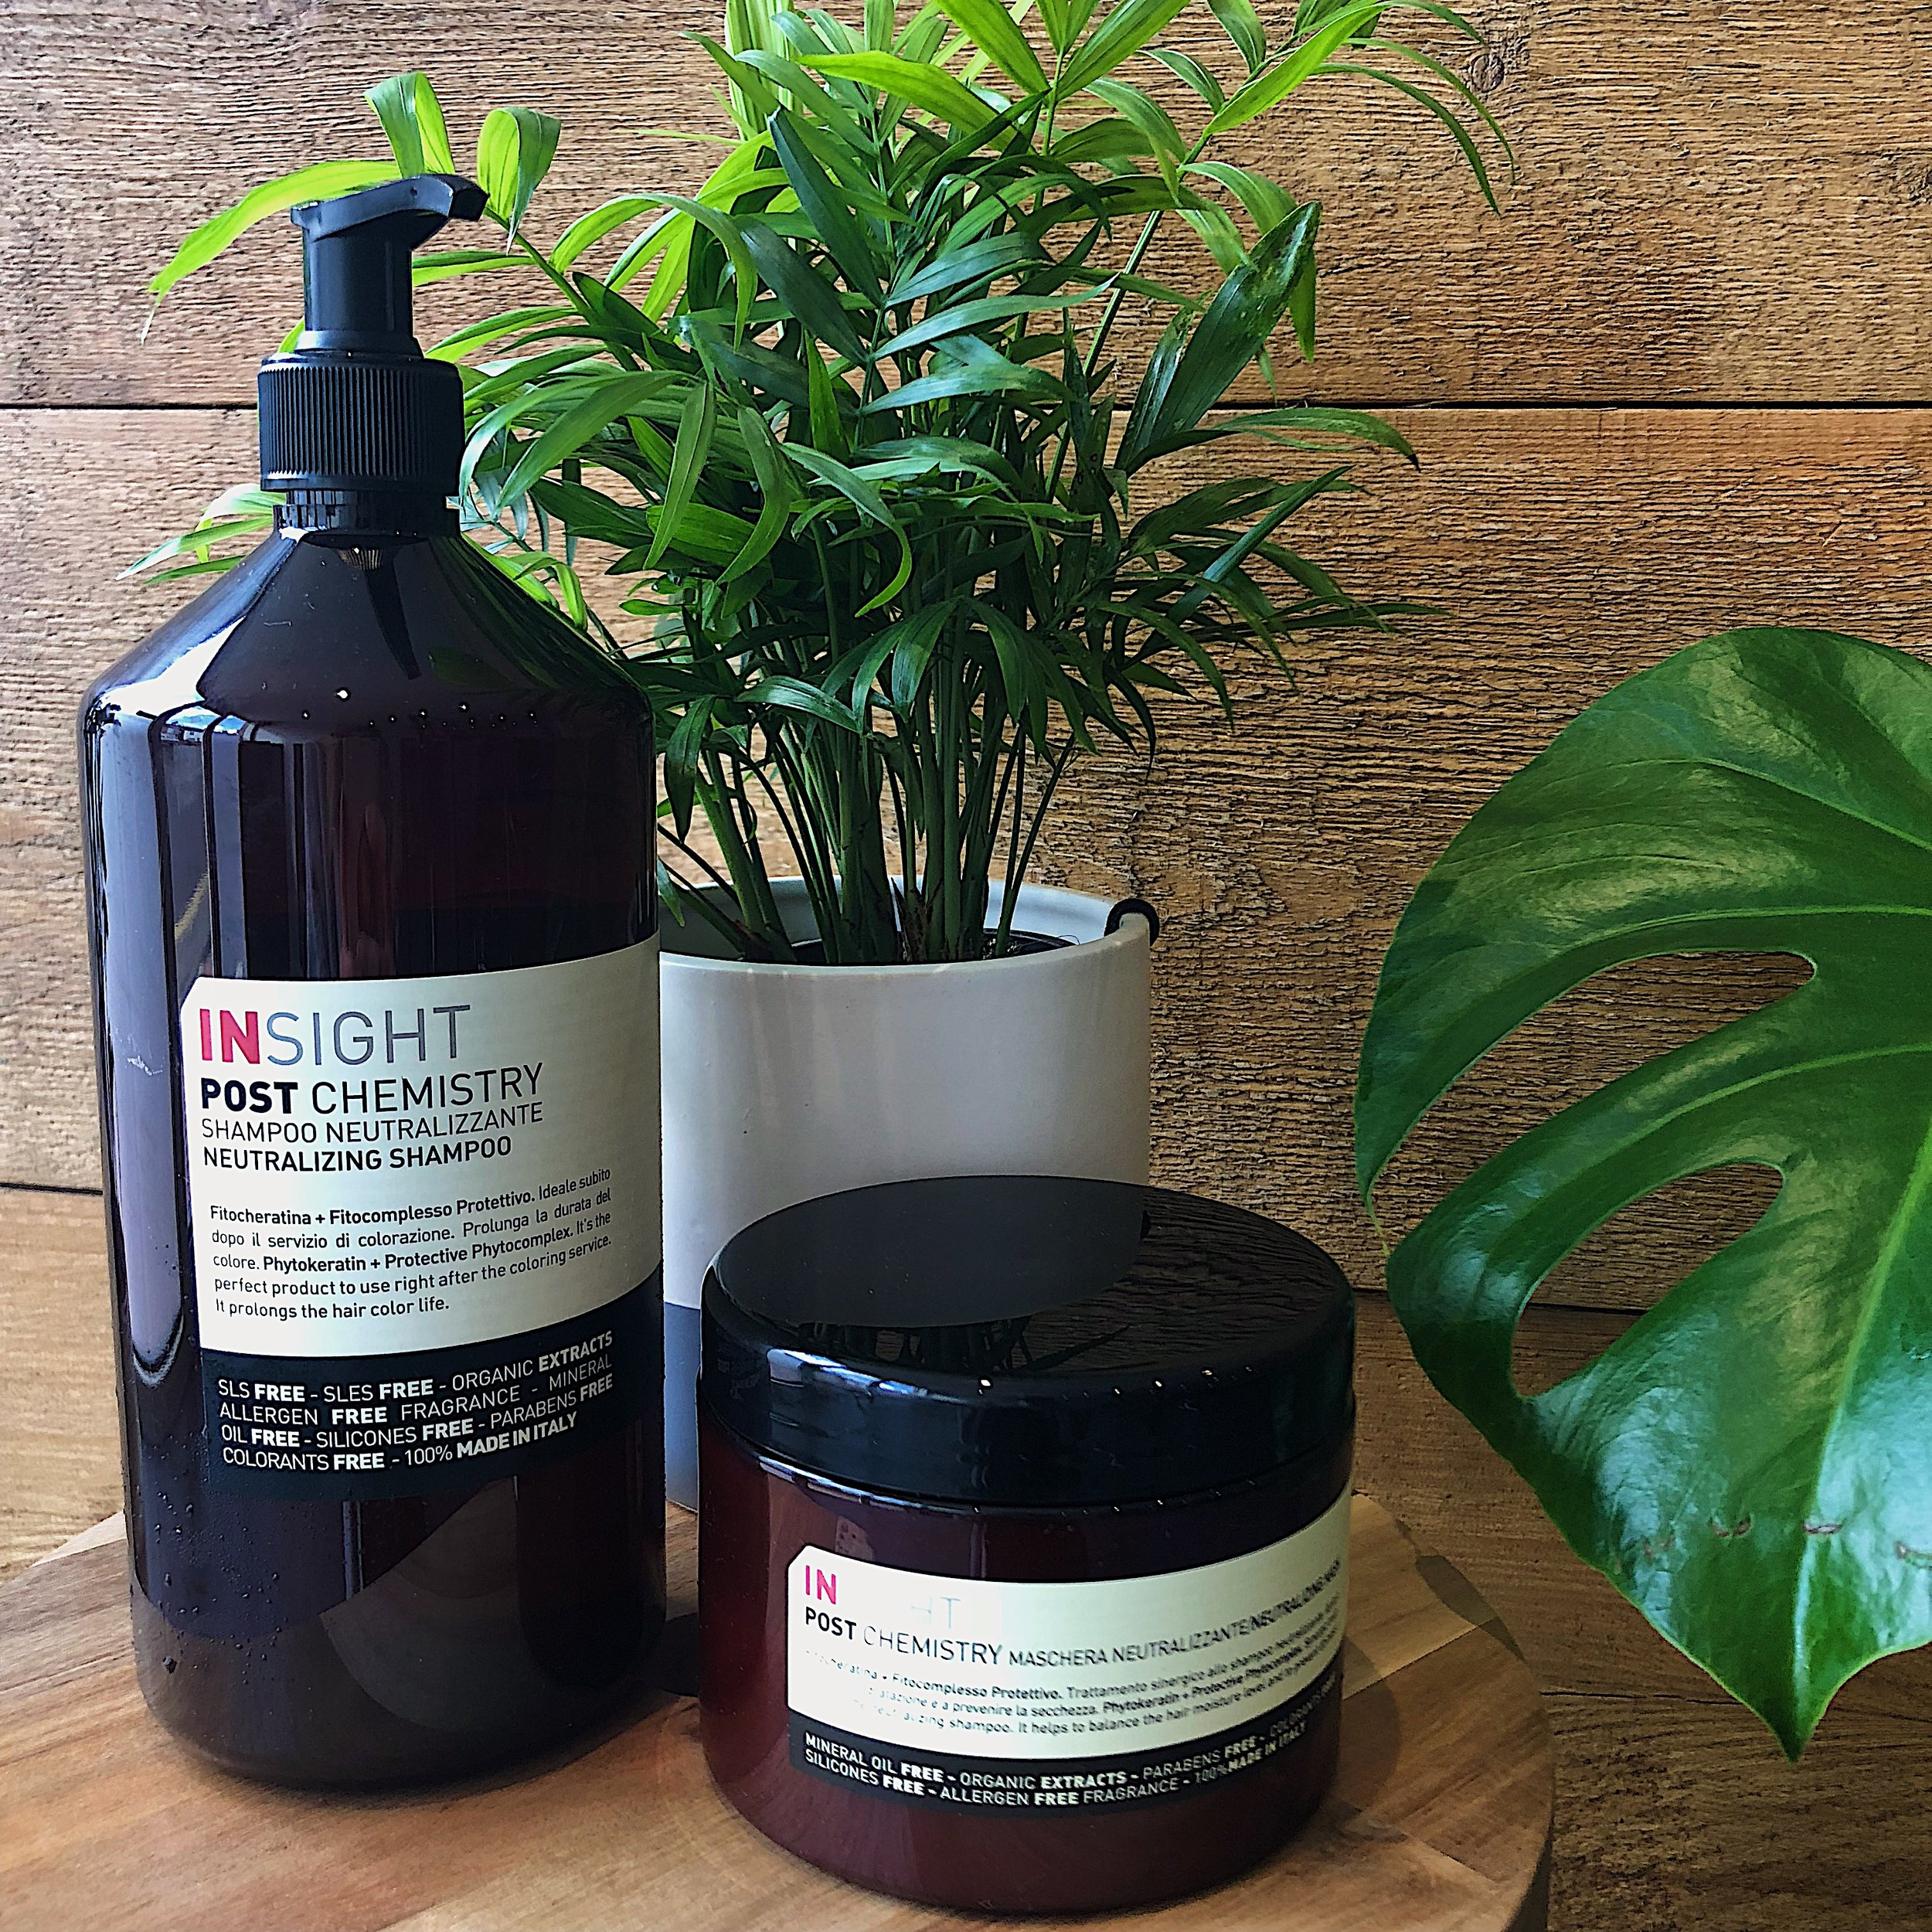 -  As an eco-conscious salon we pride ourselves on the fact we are a stockist of 100% Italian hair care range Insight. As a vegan-friendly product line, Insight delivers on hair care whilst boasting of its organic ingredients, sustainable and recyclable packaging, zero approach to animal testing and the fact it is sulphate, paraben and silicon free. To go hand-in-hand with this, we have chosen a disposal service where 90% of our in-salon waste is recycled with future plans including water-use reductions and energy saving lighting.